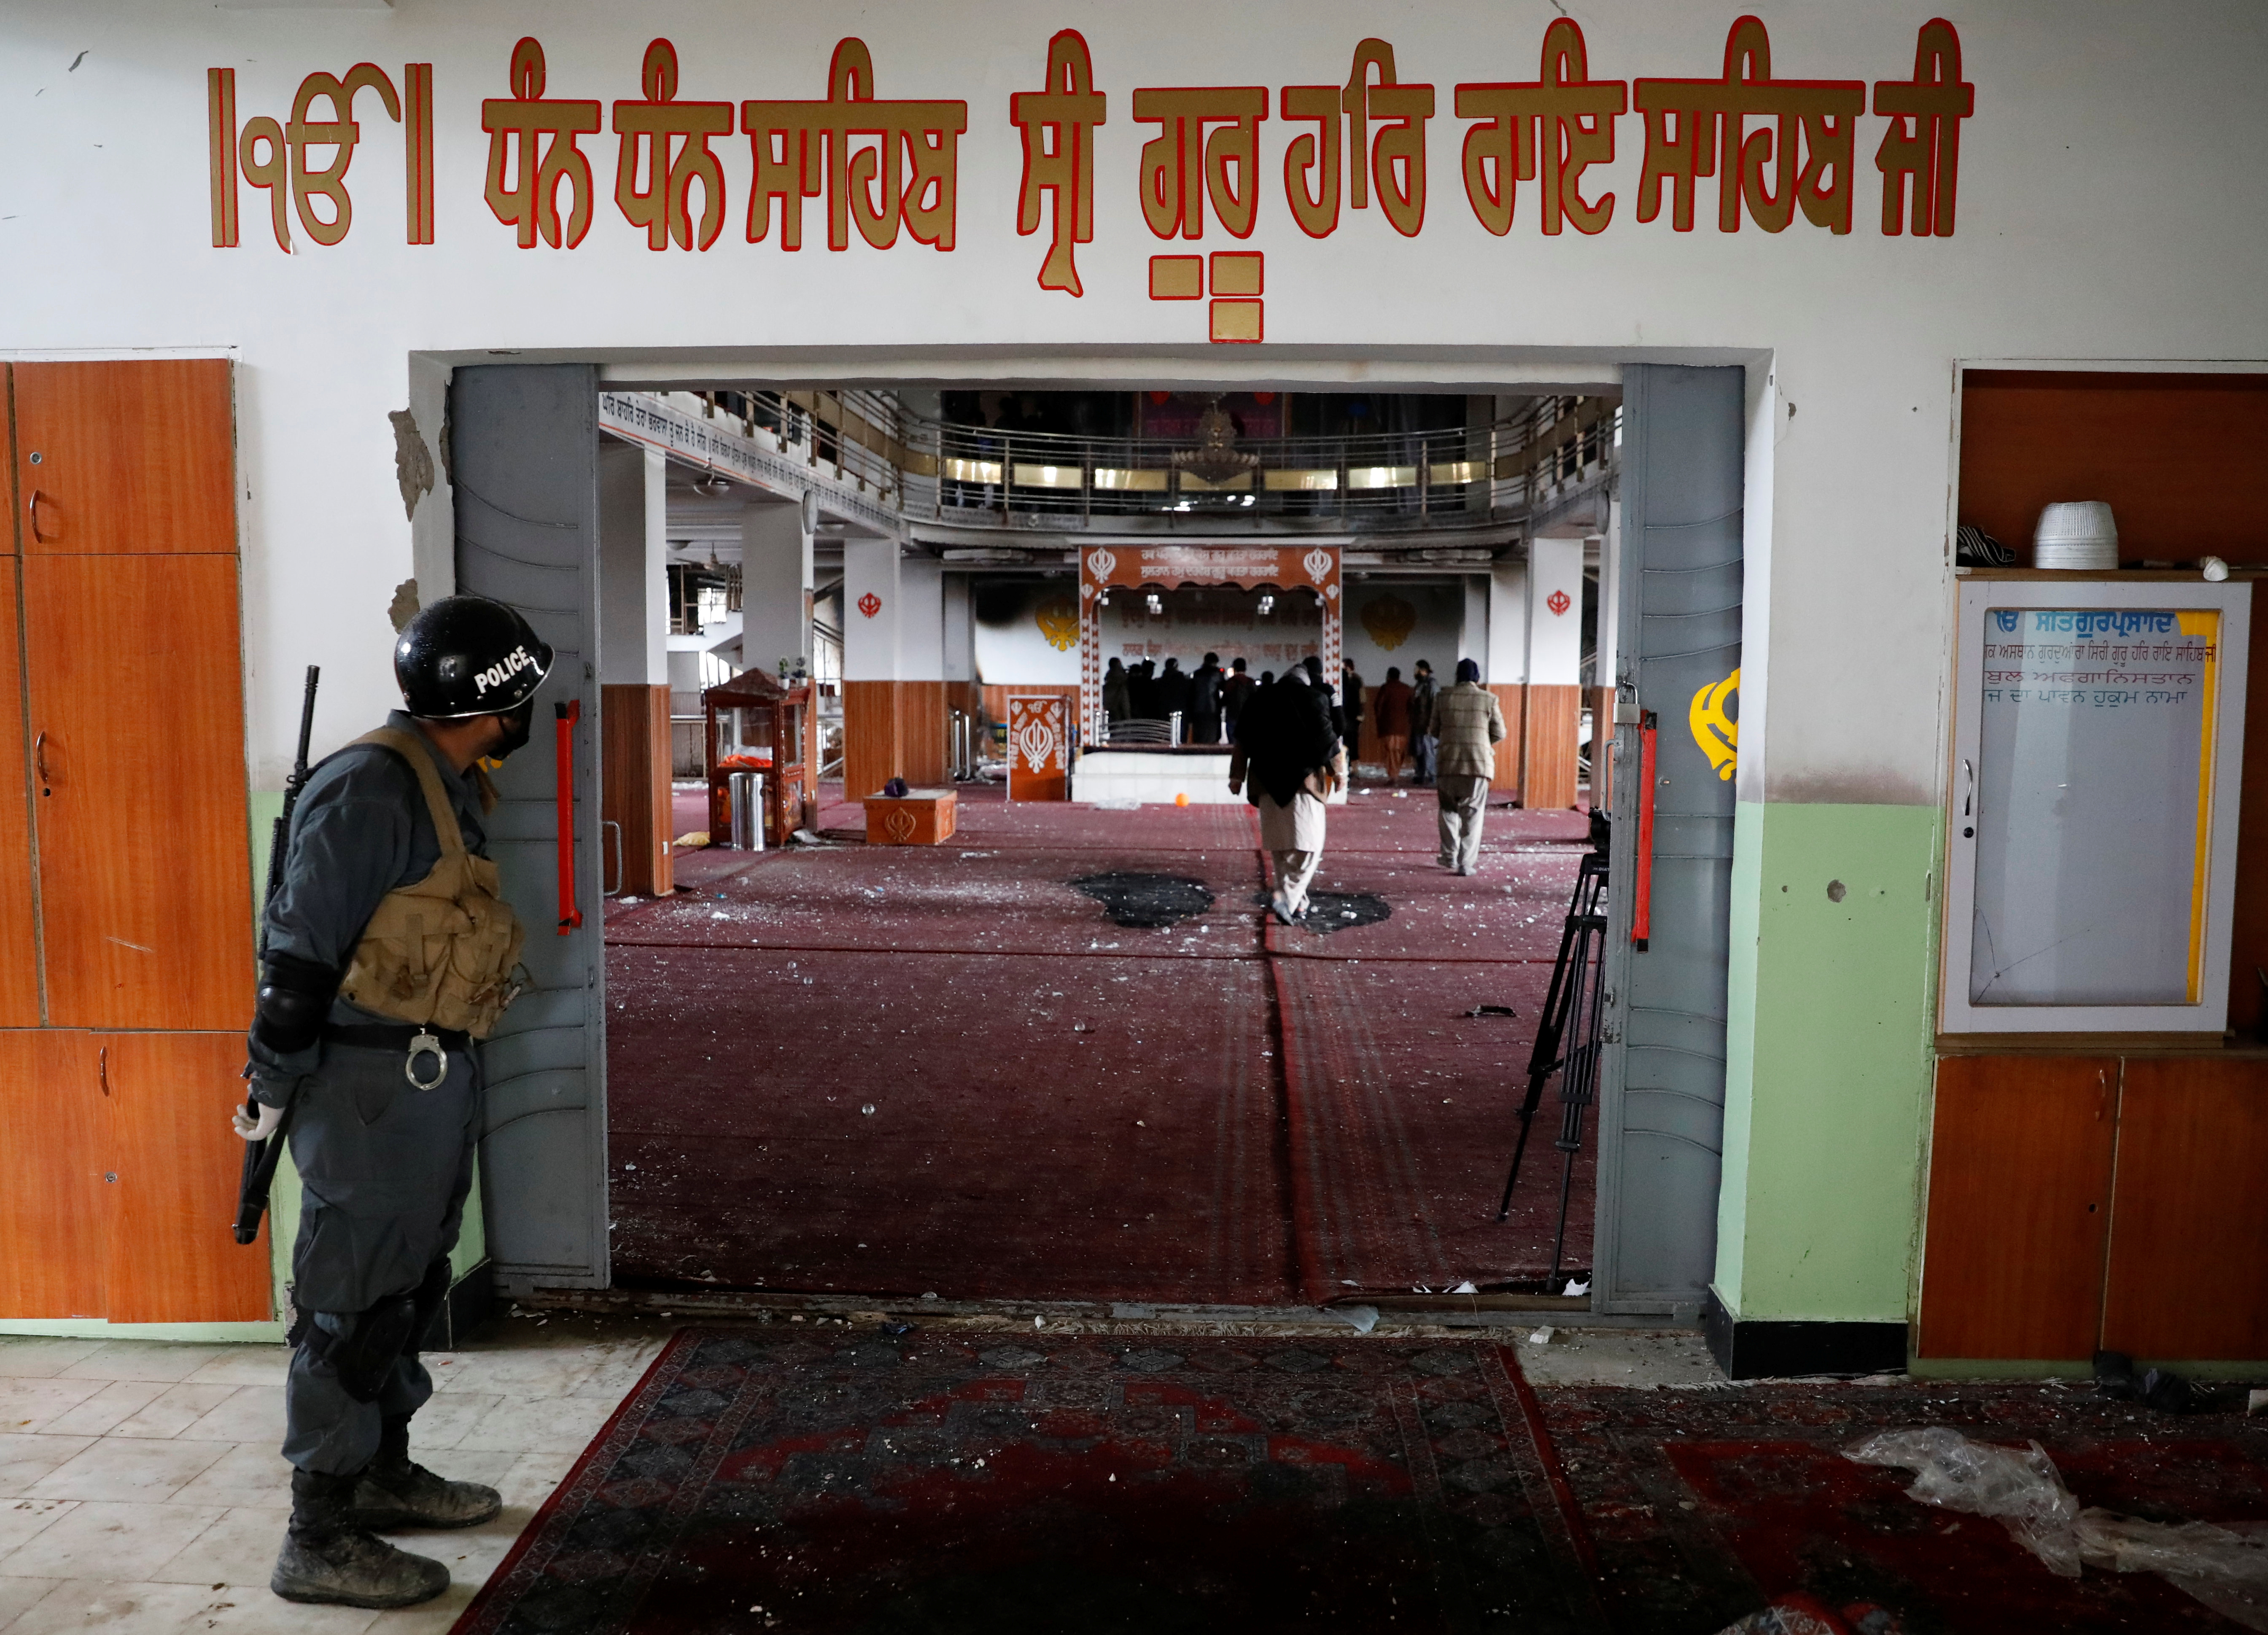 An Afghan policeman inspects inside a Sikh religious complex after an attack in Kabul, Afghanistan March 25, 2020. Photo: Reuters